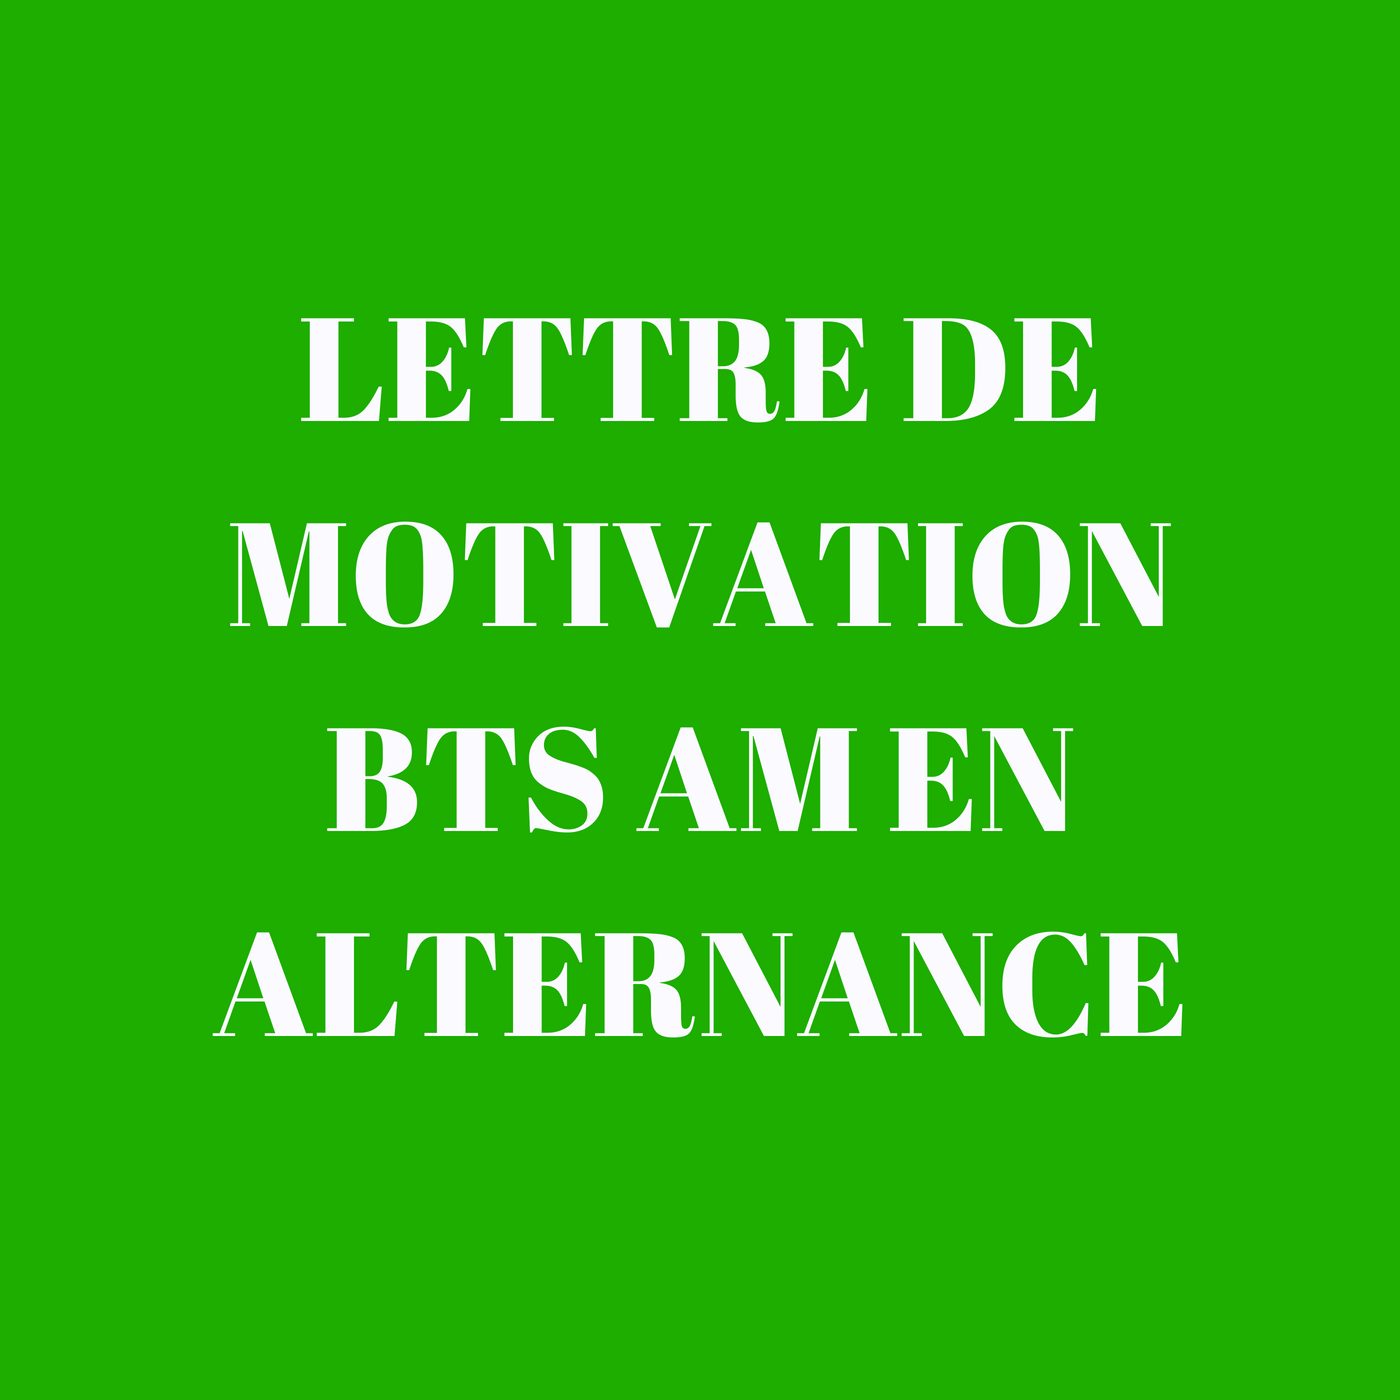 Lettre de motivation BTS AM en alternance